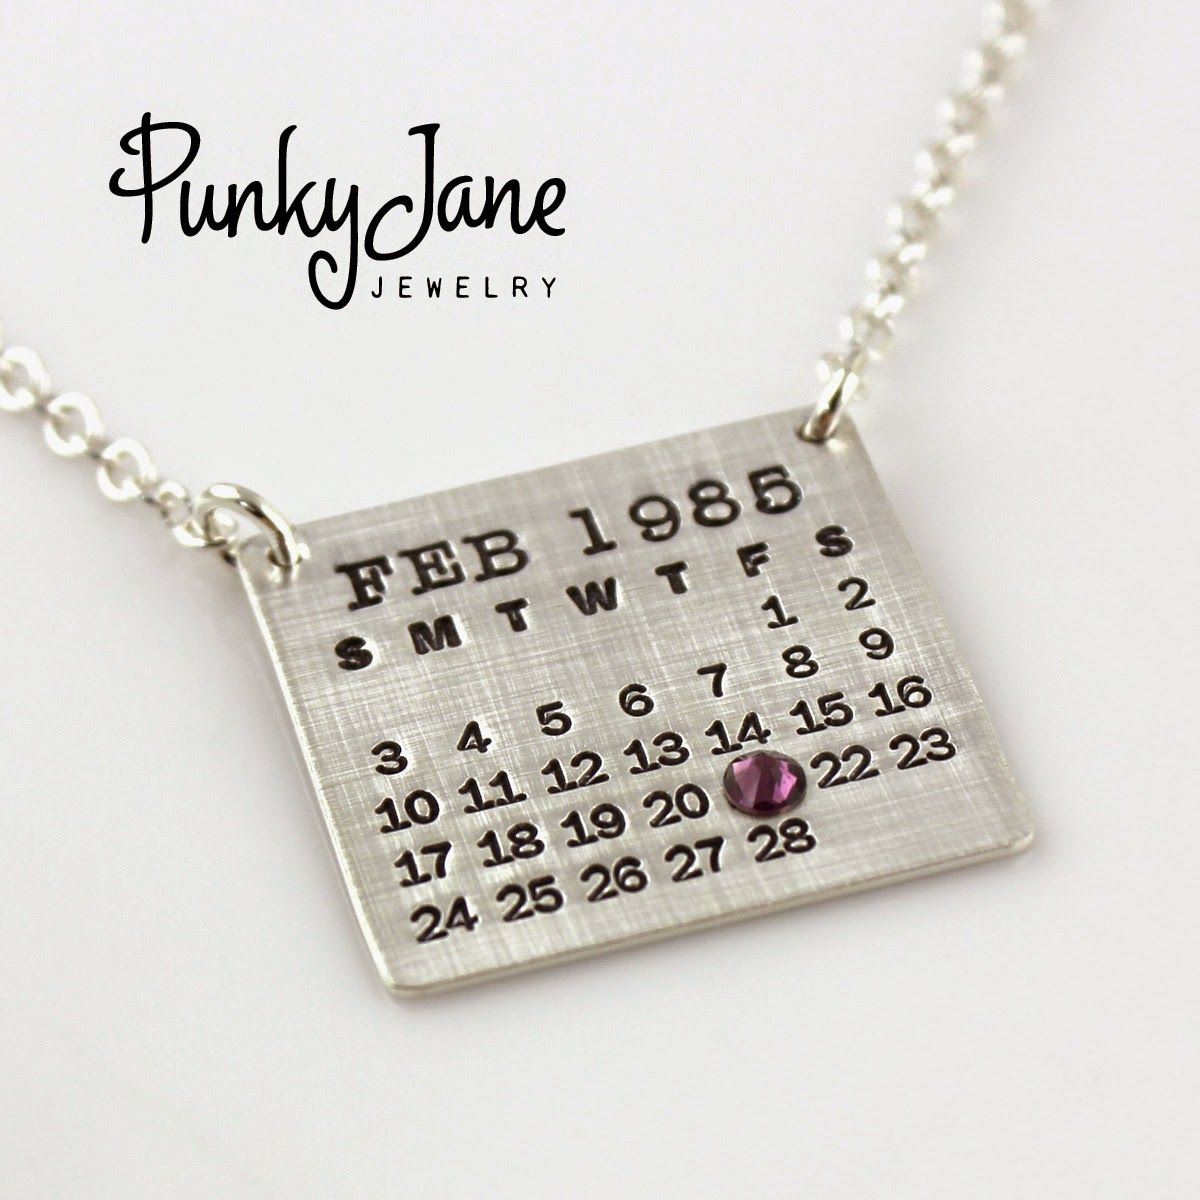 Punky Jane Jewelry mothers day necklace